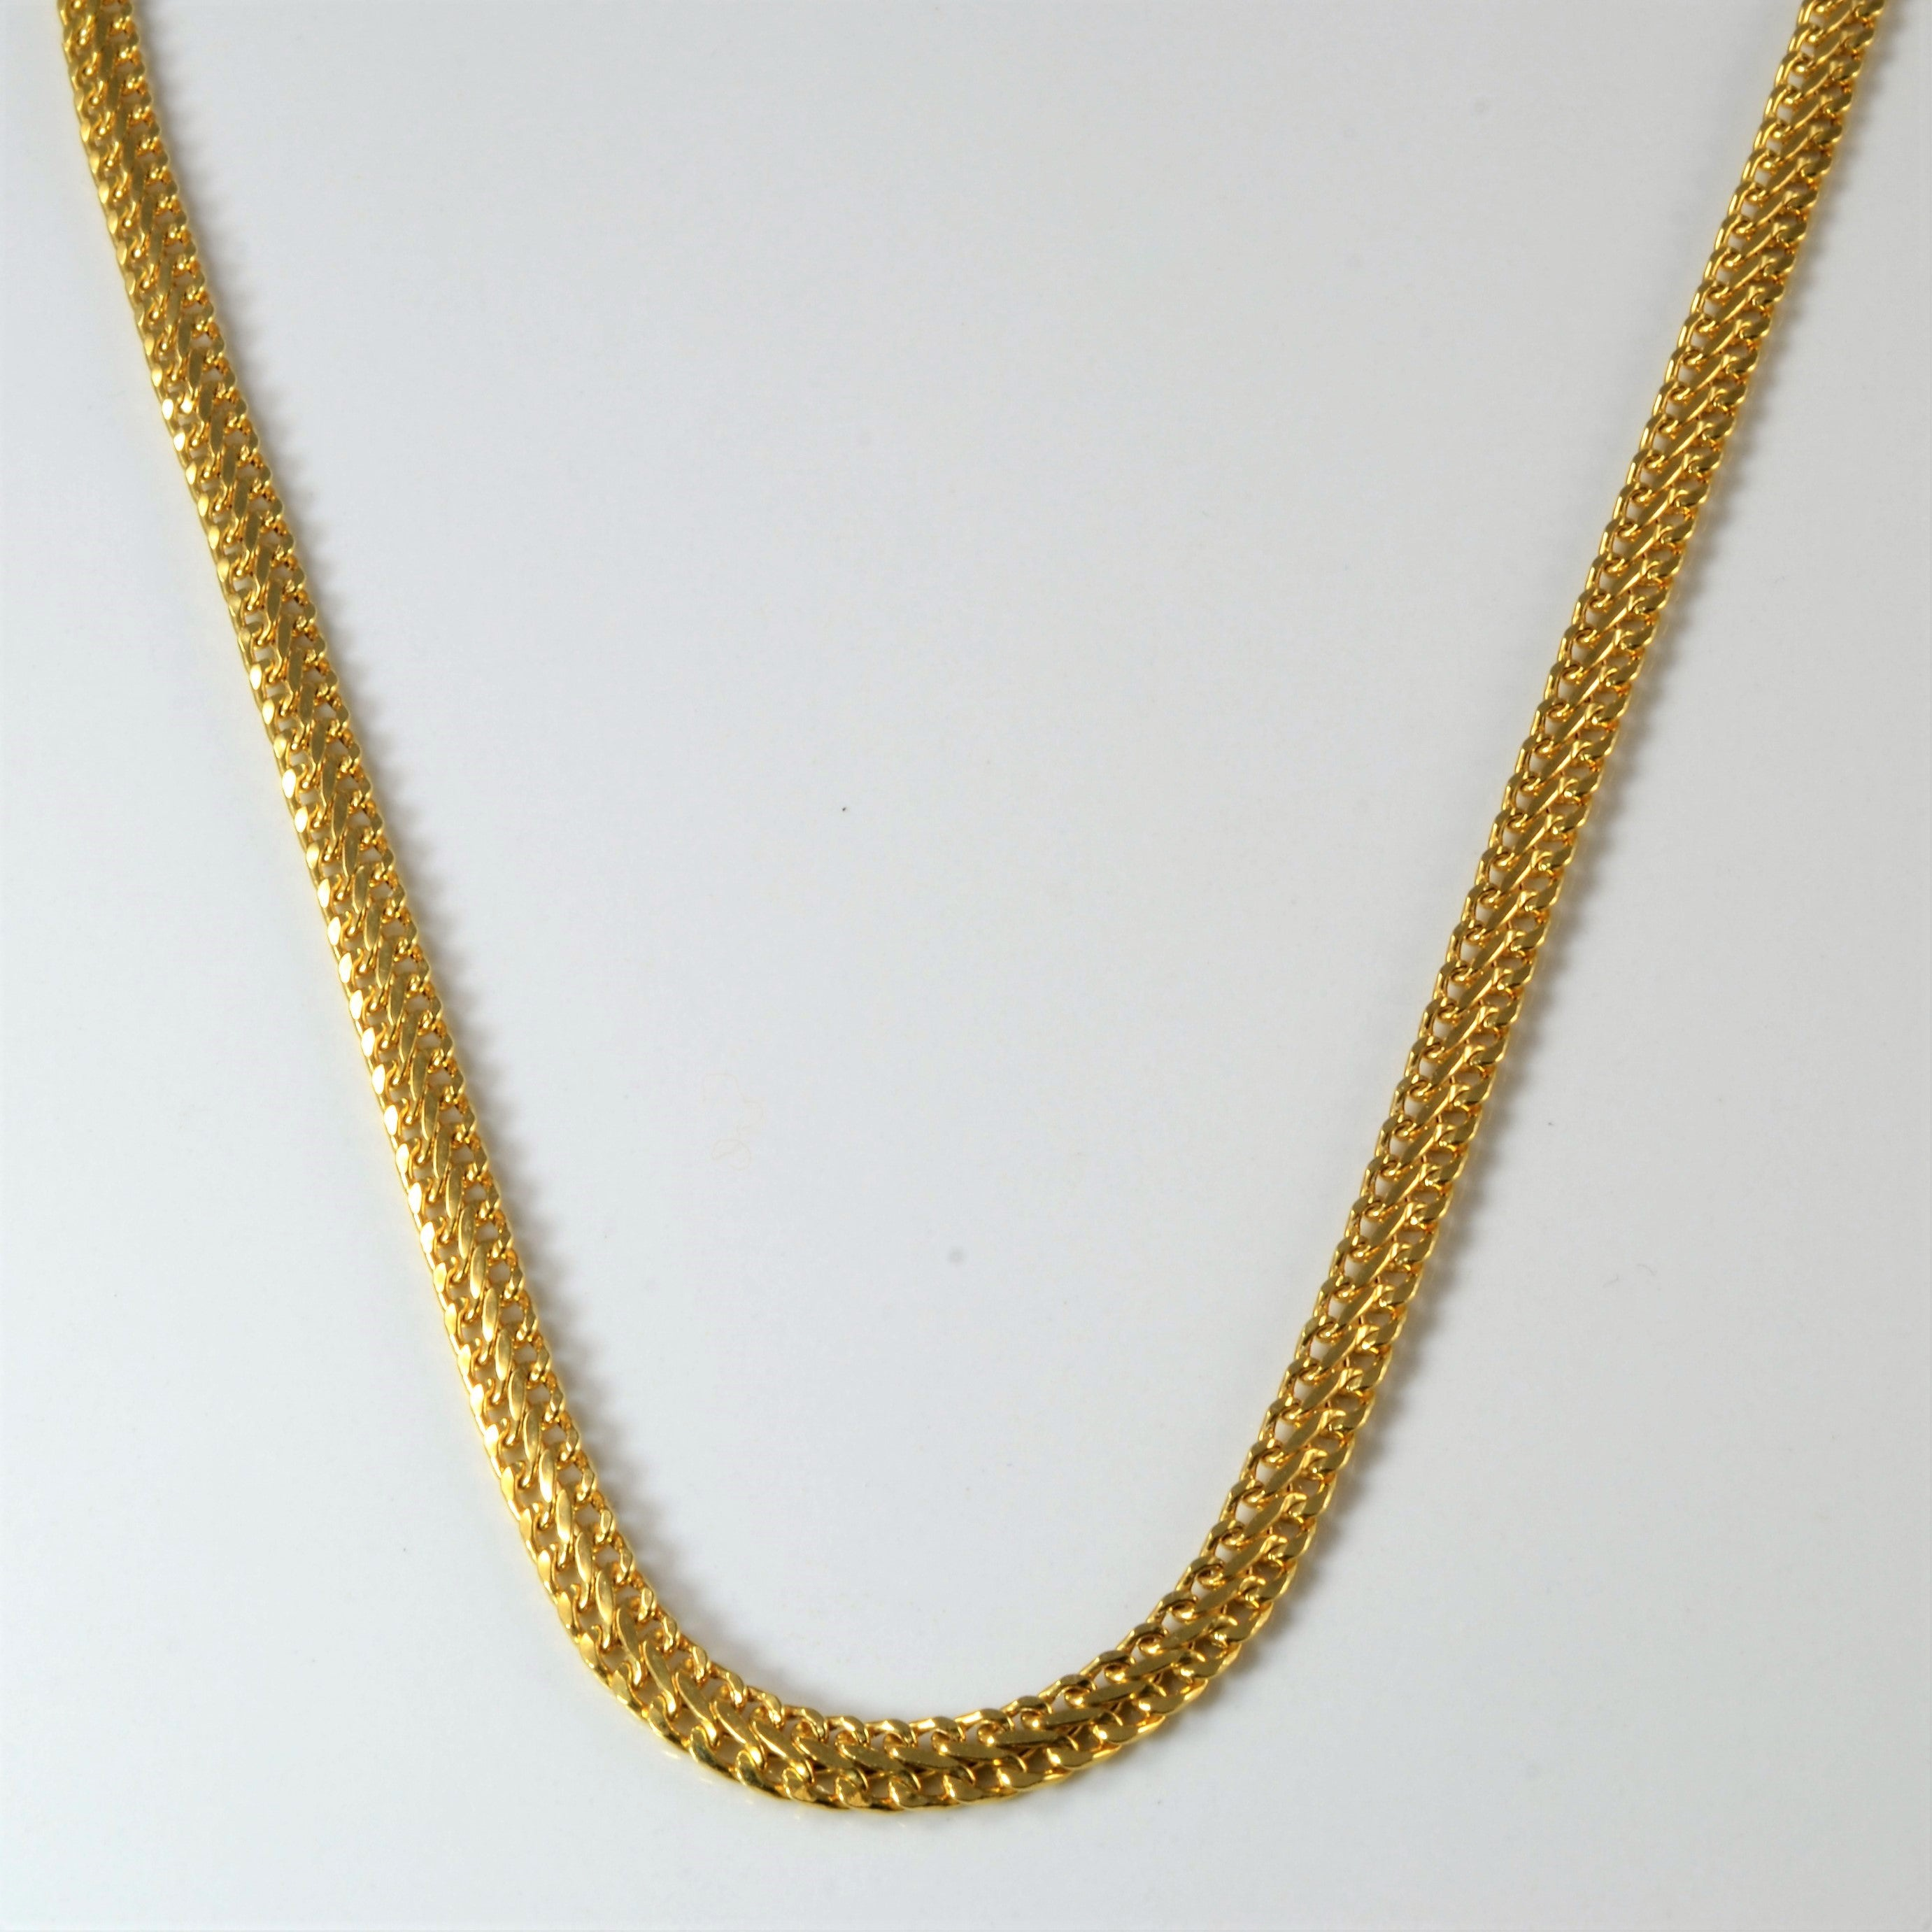 18k Yellow Gold Dual Link Curb Chain | 20"